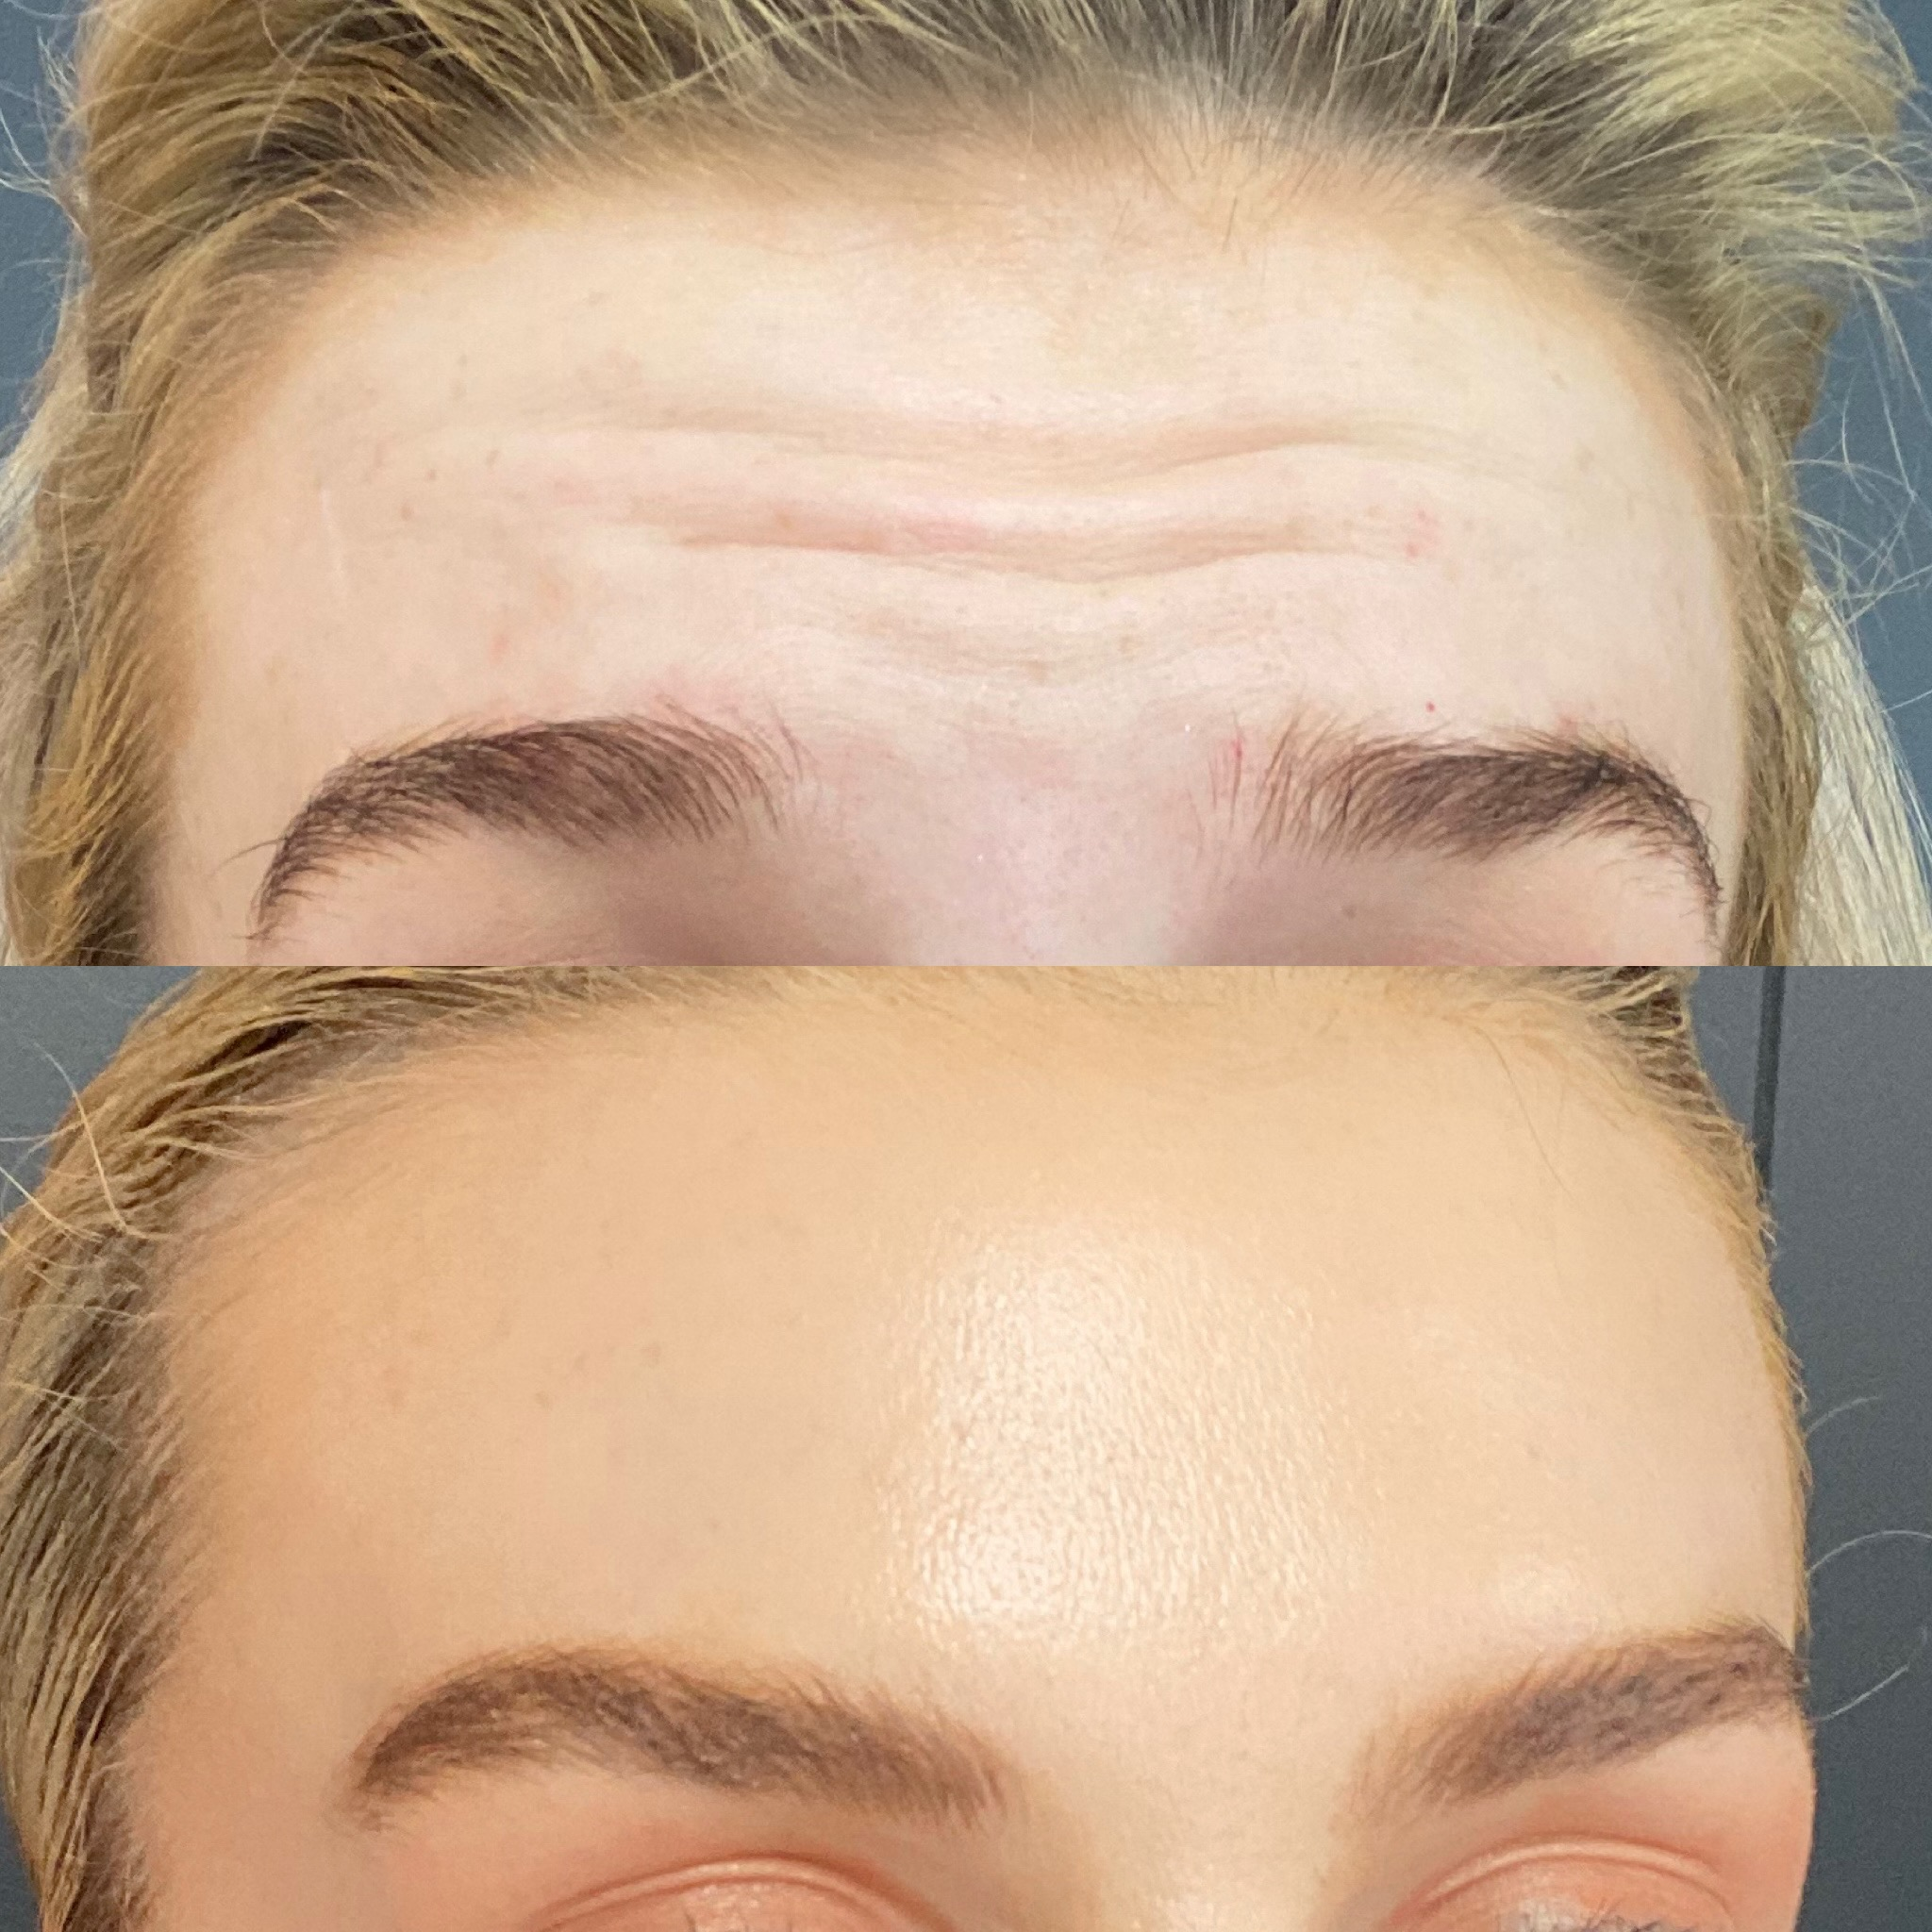 Anti Wrinkle Forehead - Anti Wrinkle Injections - Elinay Cosmetic Surgery Centre Brisbane QLD